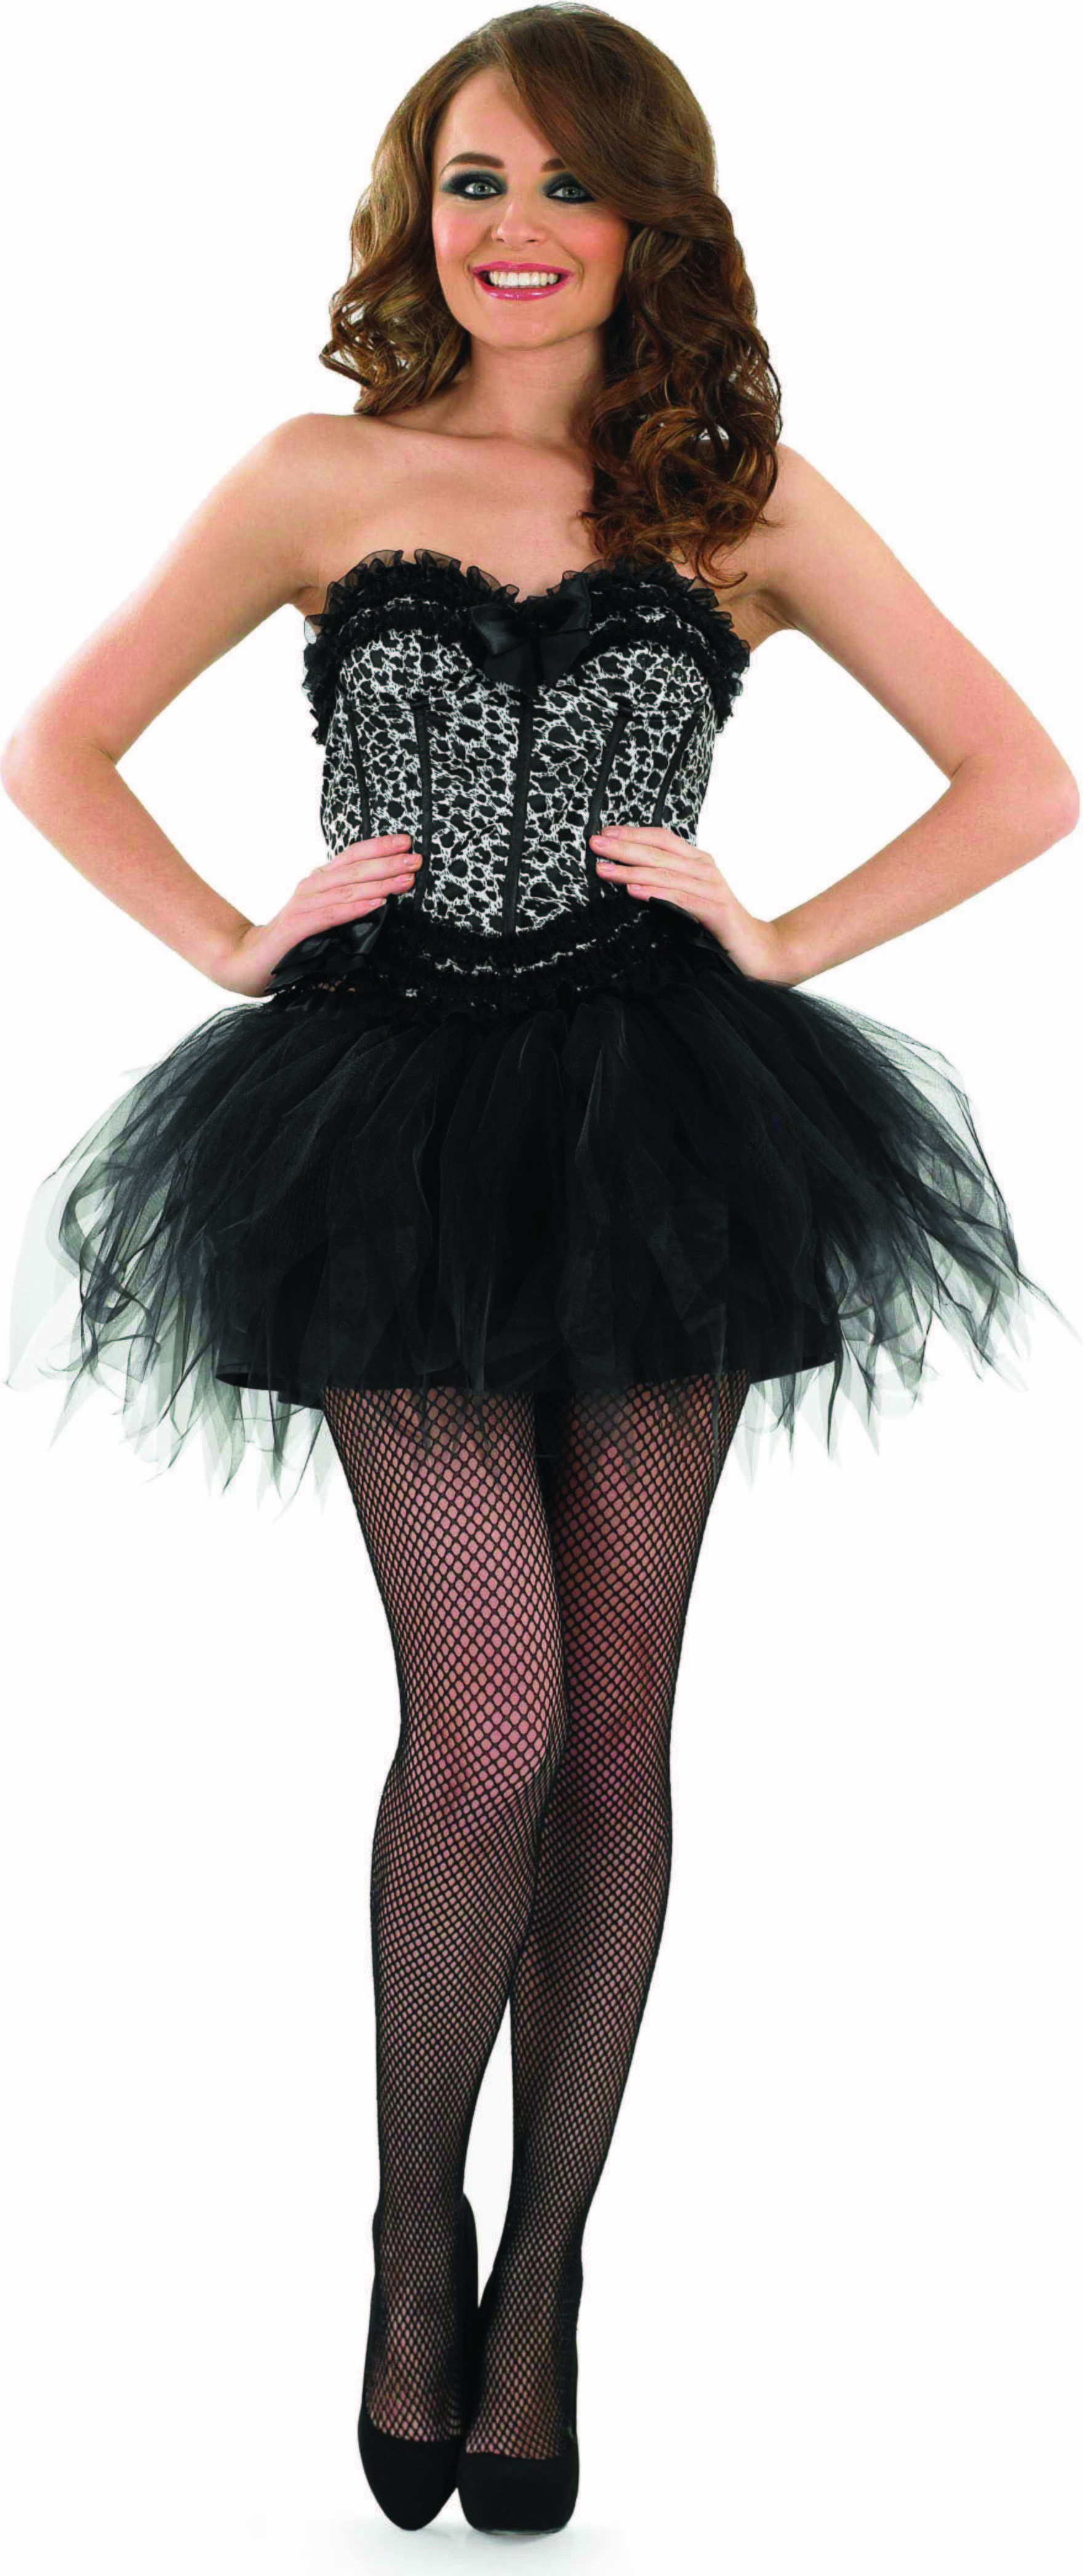 Ladies Snow Leopard Corset & Tutu Tutus - (Brown)